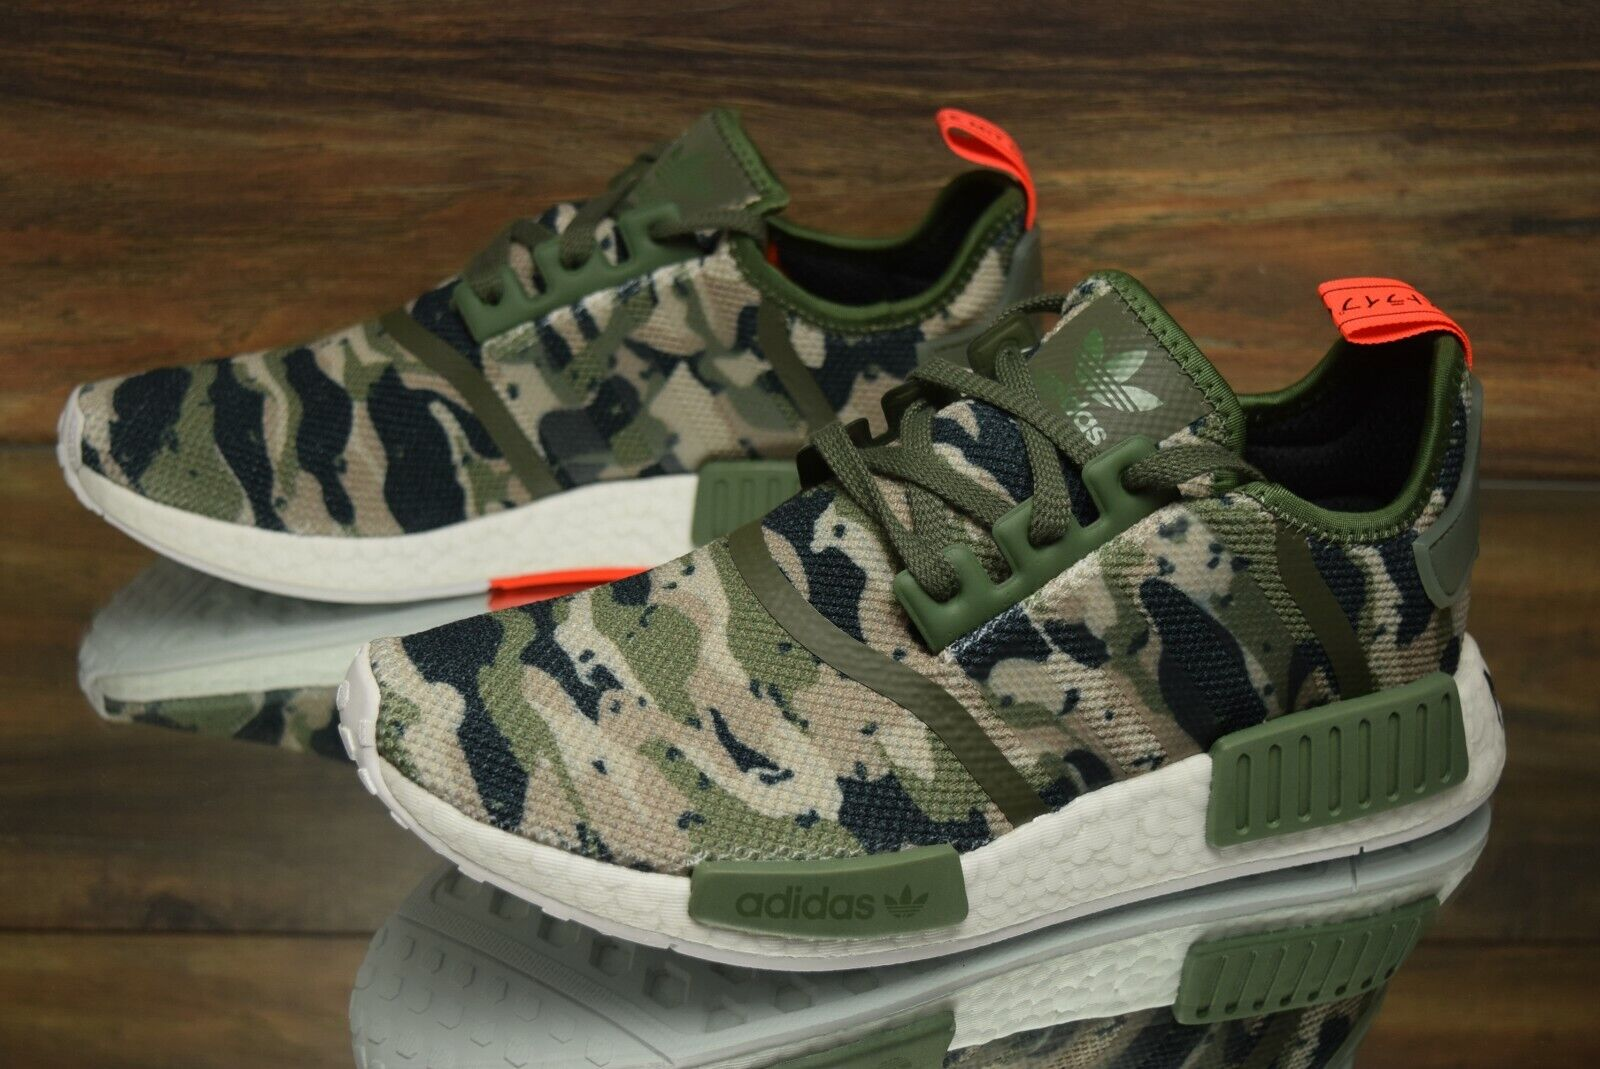 Adidas NMD R1  Camo  G27914 Running shoes Men's Size 9.5 NEW